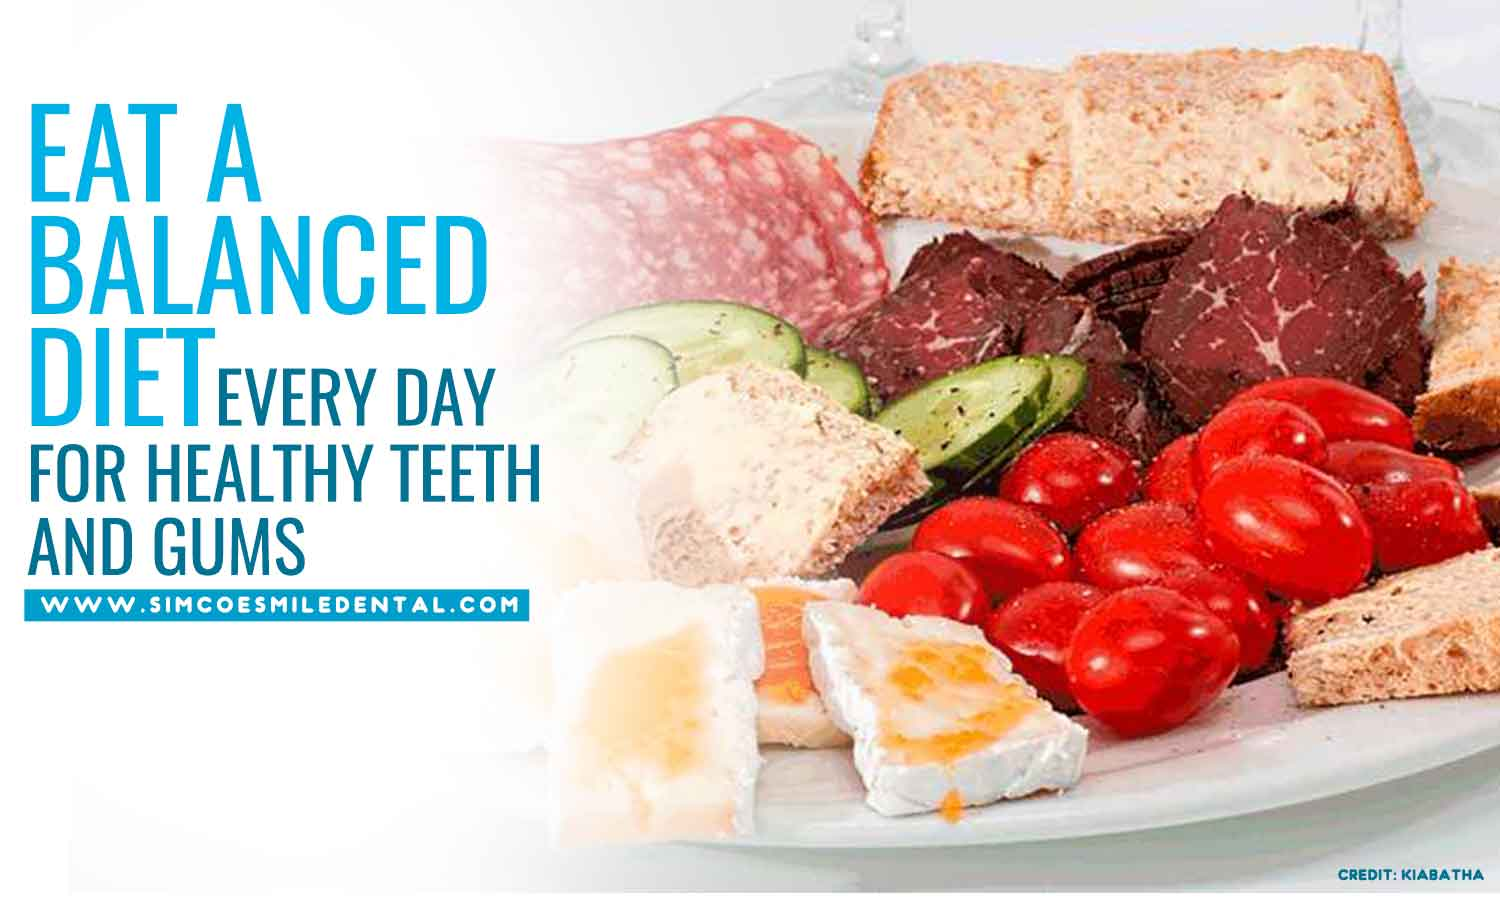 Eat-a-balanced-diet-every-day-for-healthy-teeth-and-gums How A Healthy Lifestyle Can Preserve Your Oral Health